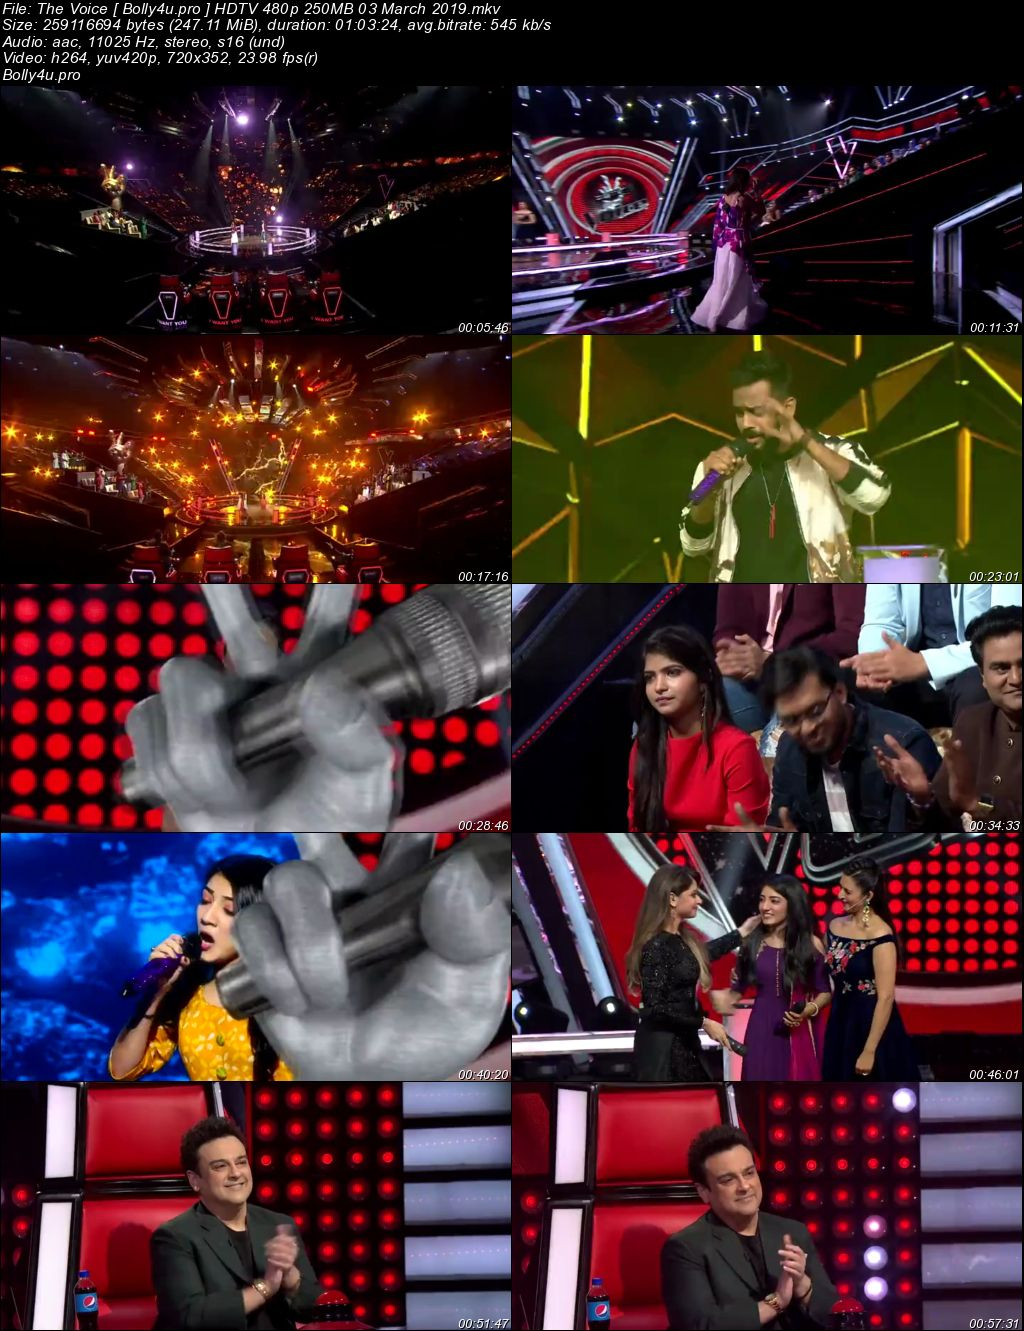 The Voice HDTV 480p 250MB 03 March 2019 Download